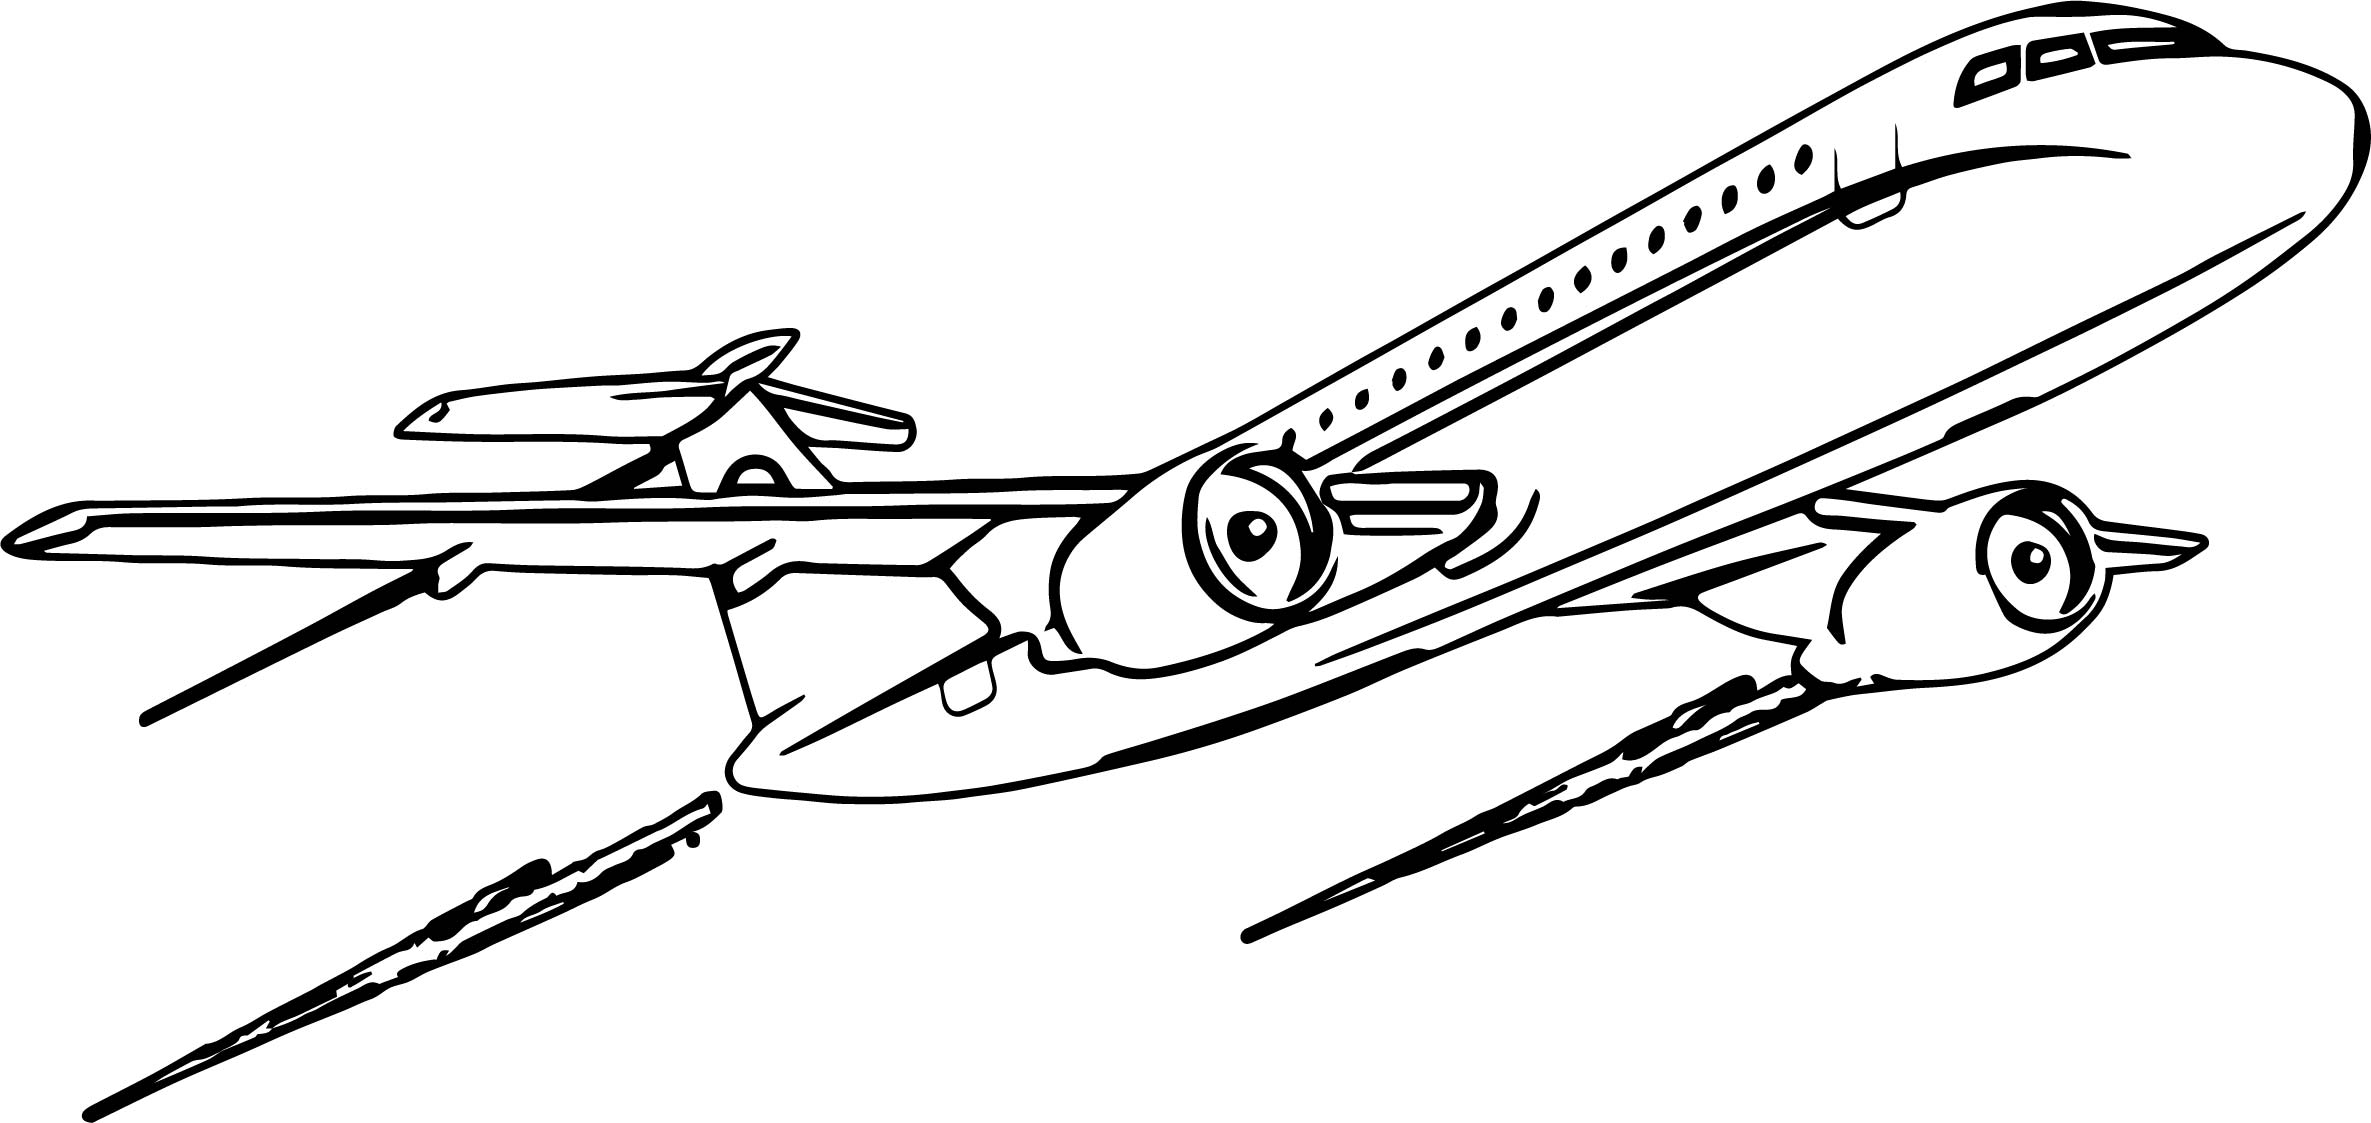 Airplane Departure Coloring Page